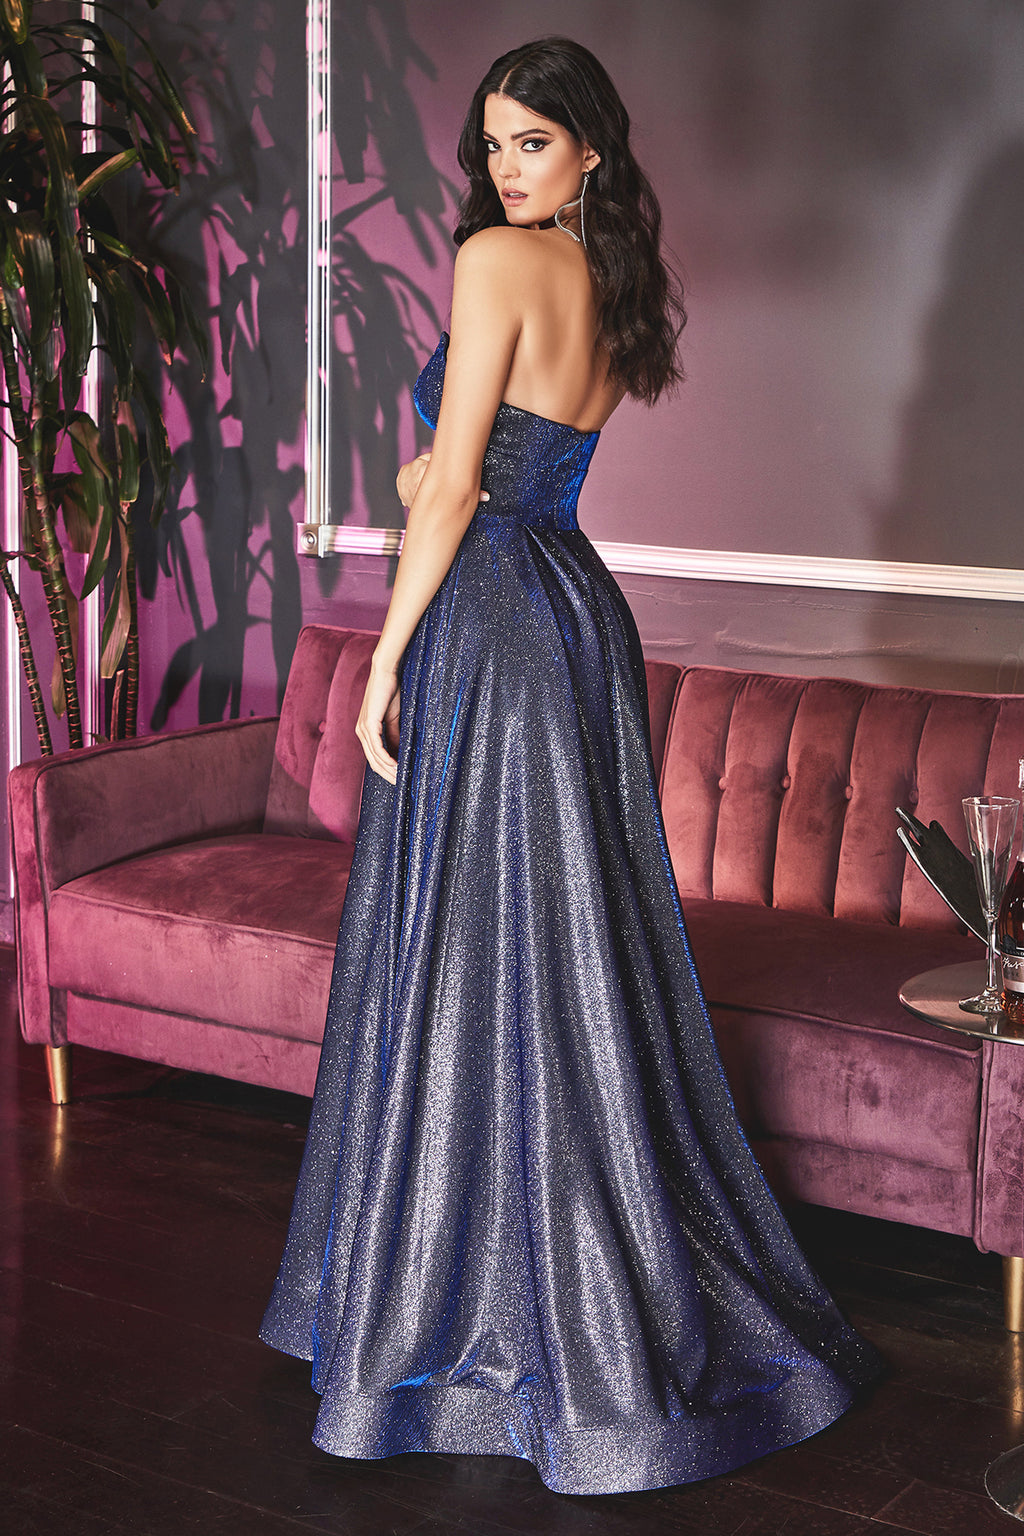 Shimmery Strapless Gown with Fitted Waist and Leg Slit #CDCJ522